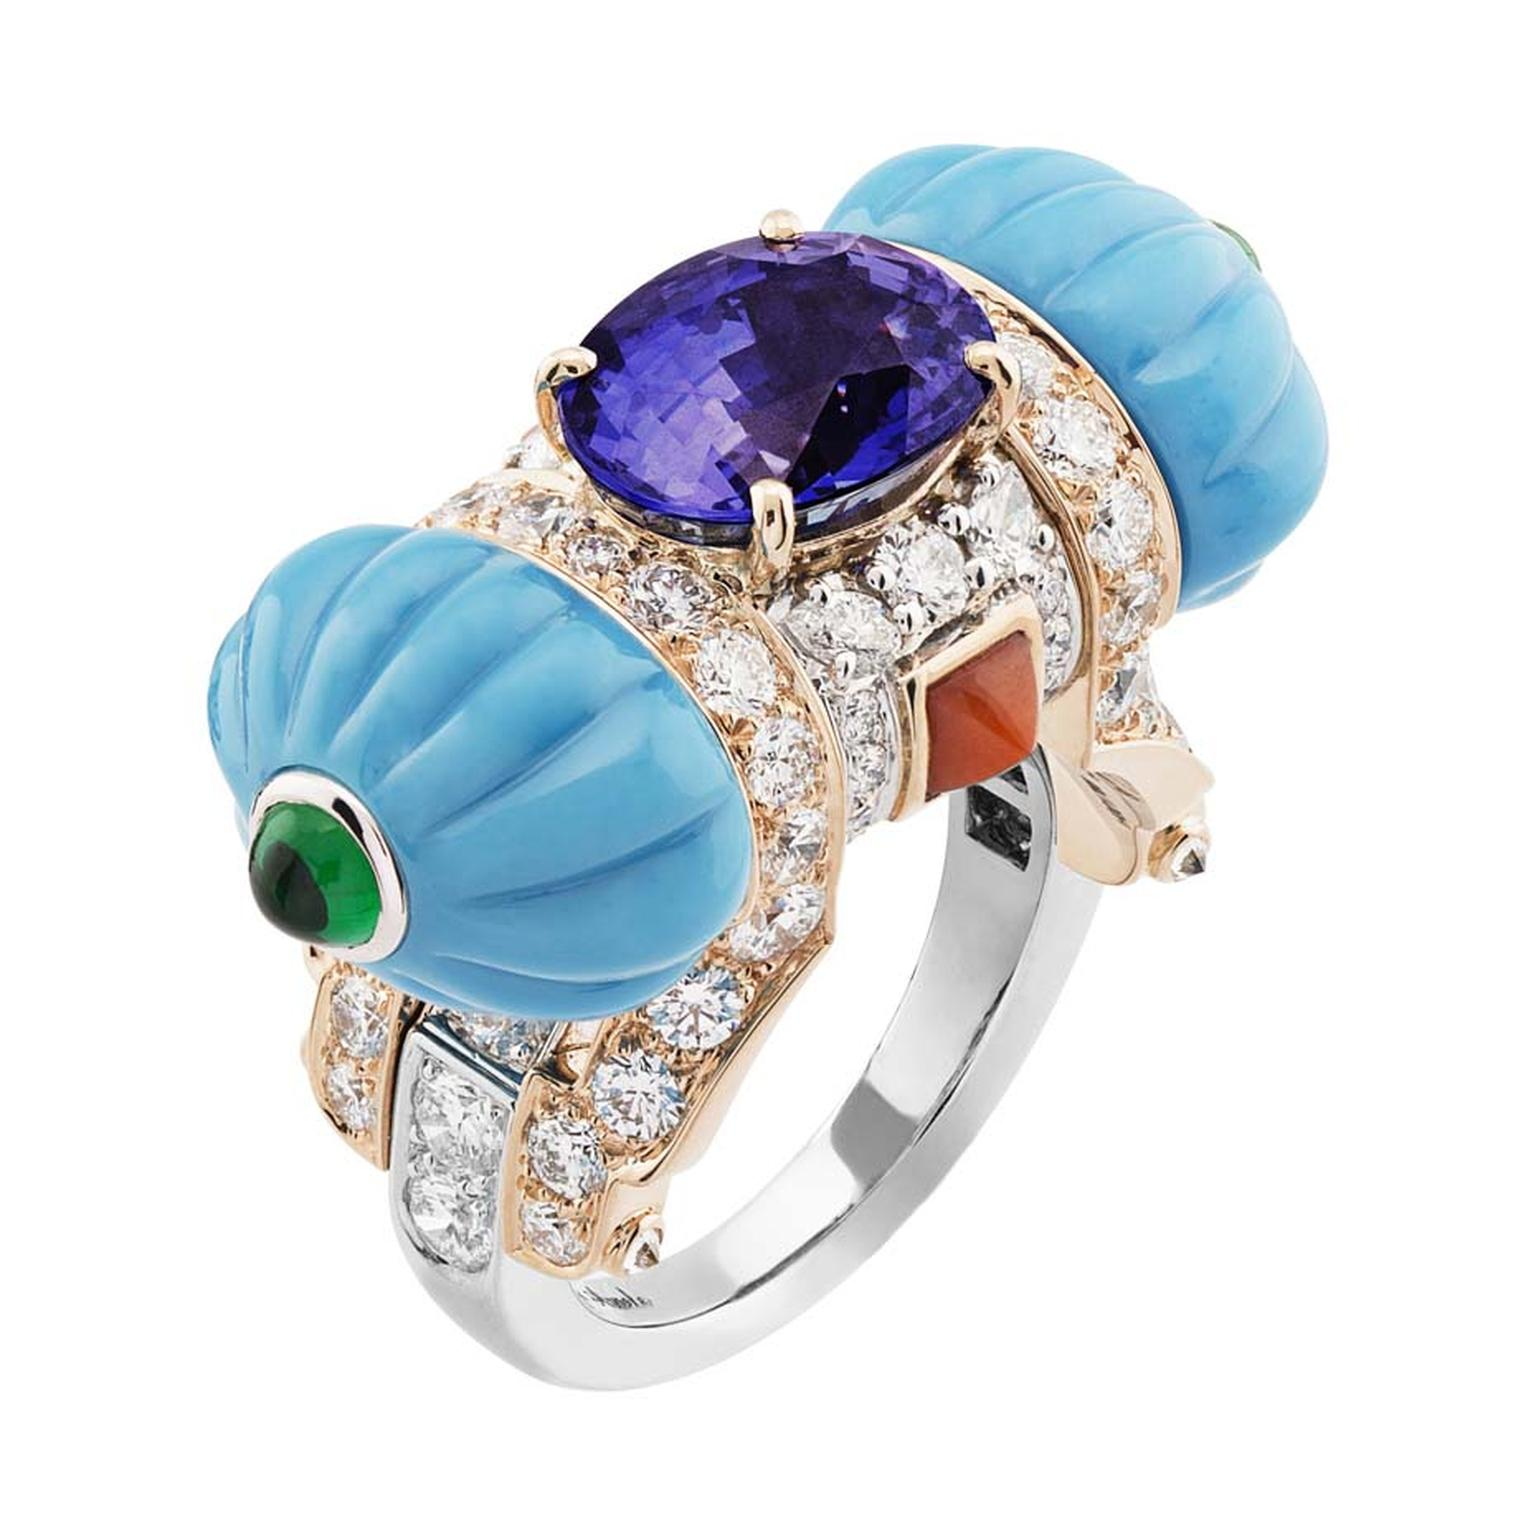 The Cadeau d'Orient white and pink gold ring with turquoise, coral, emeralds, diamonds and a centrally set oval cut purple sapphire.